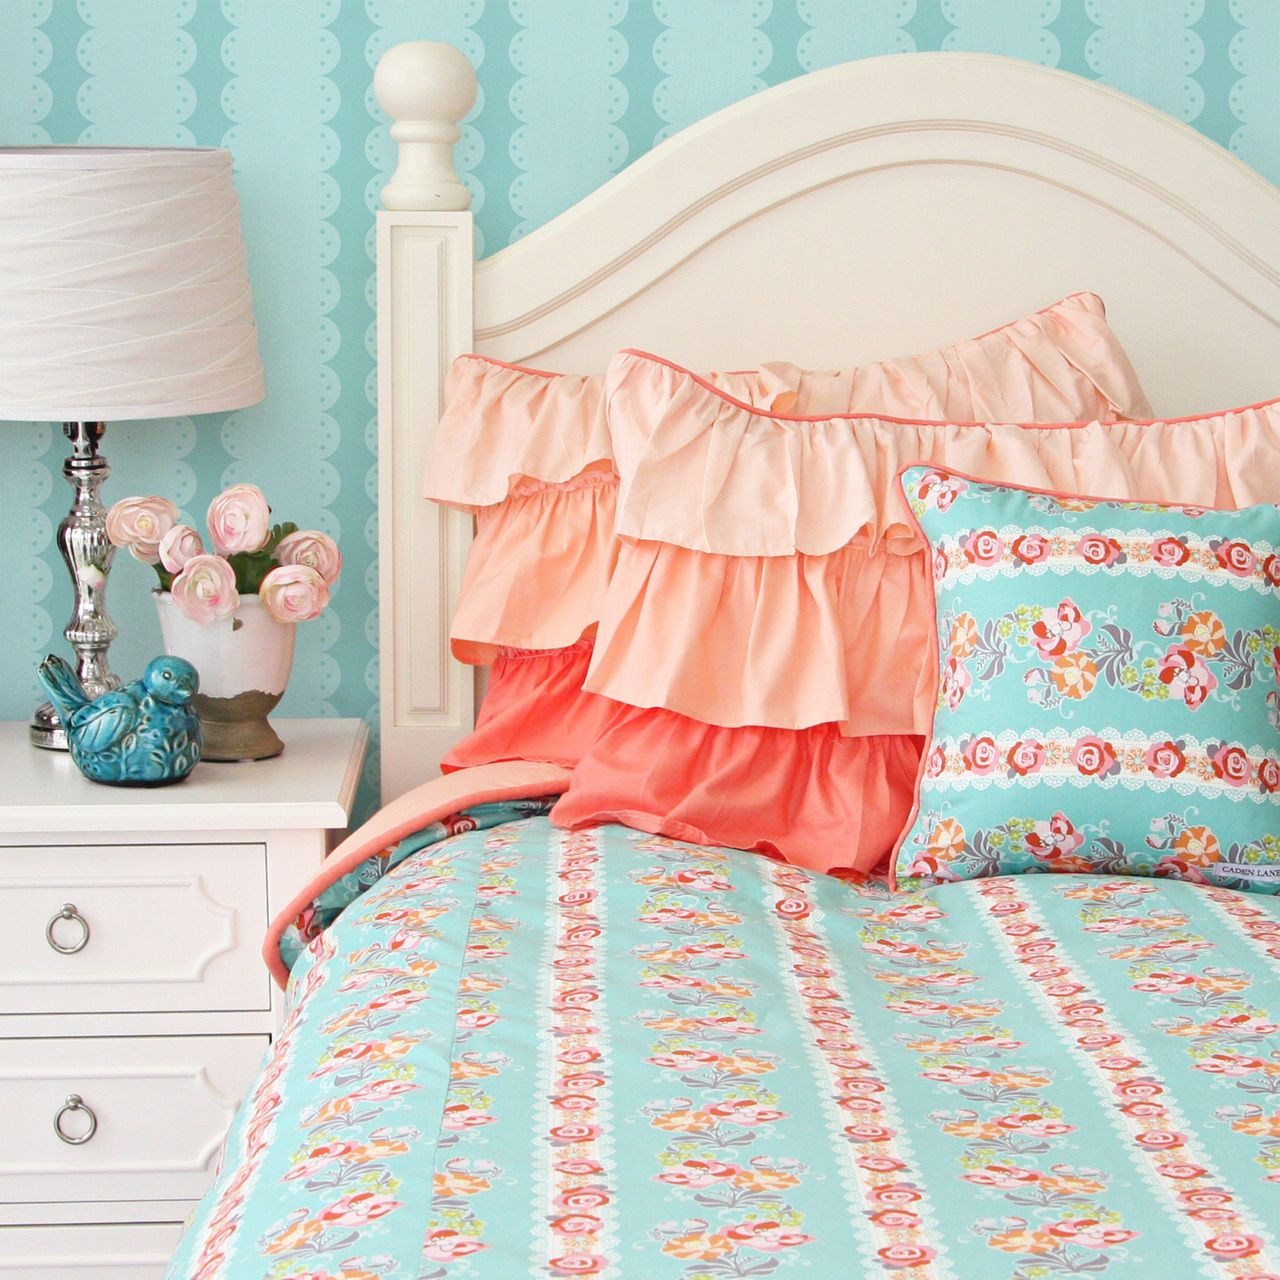 Turquoise and pink bedding - Coral And Turquoise Bedding Features Such Charming Sets For Baby Room Decorating Ideas Girls And